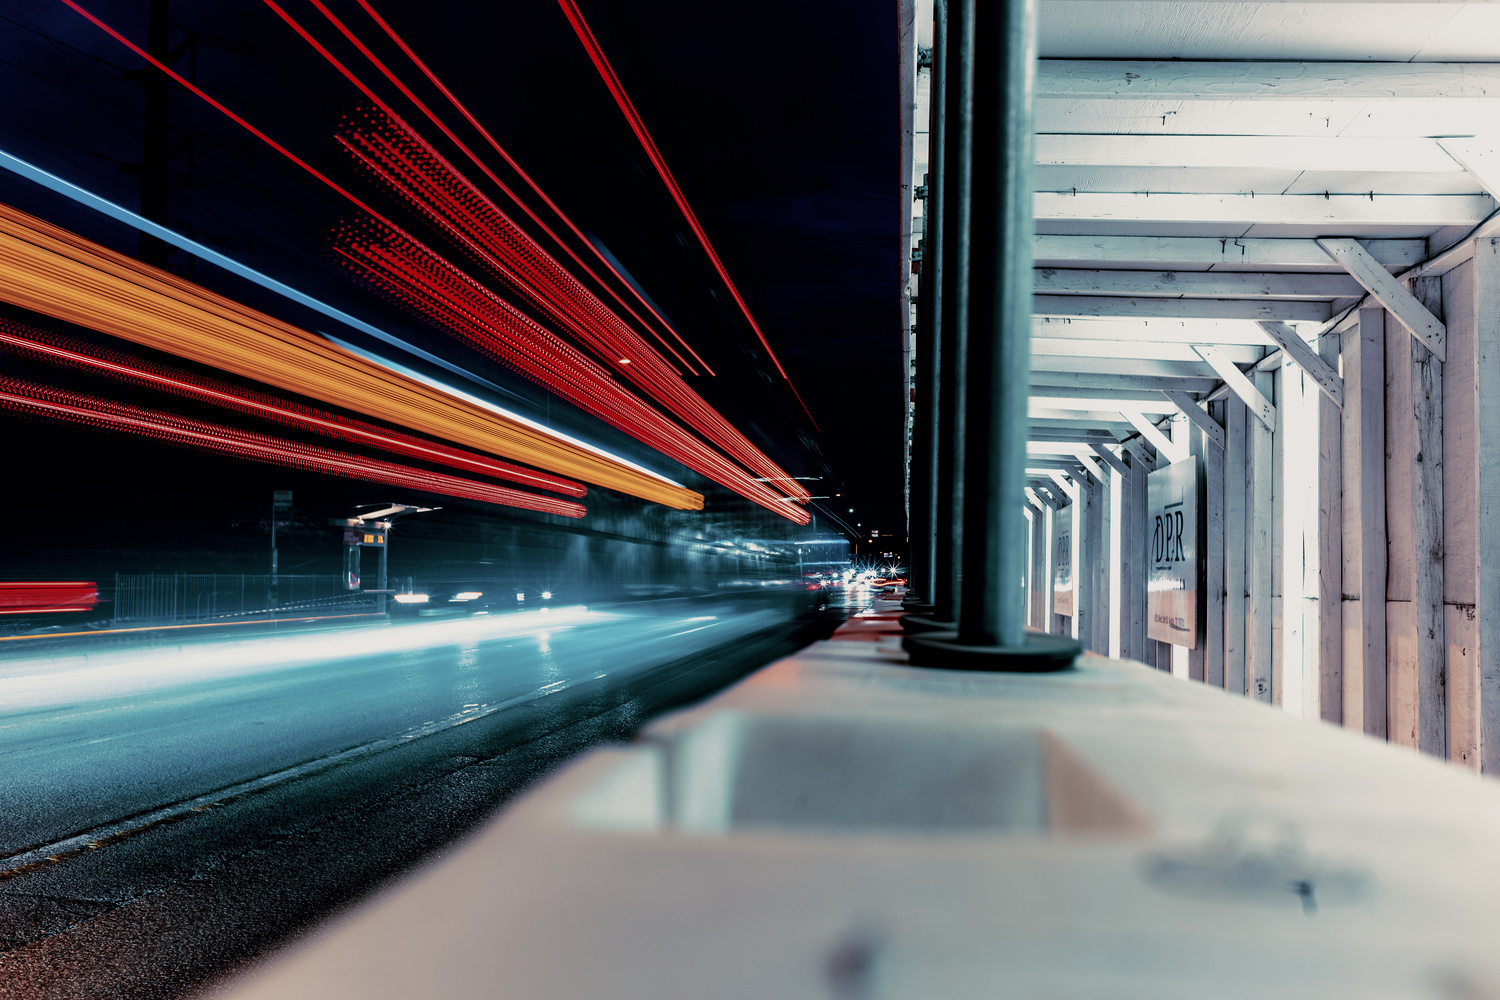 Speed of Light by Andres Medrano